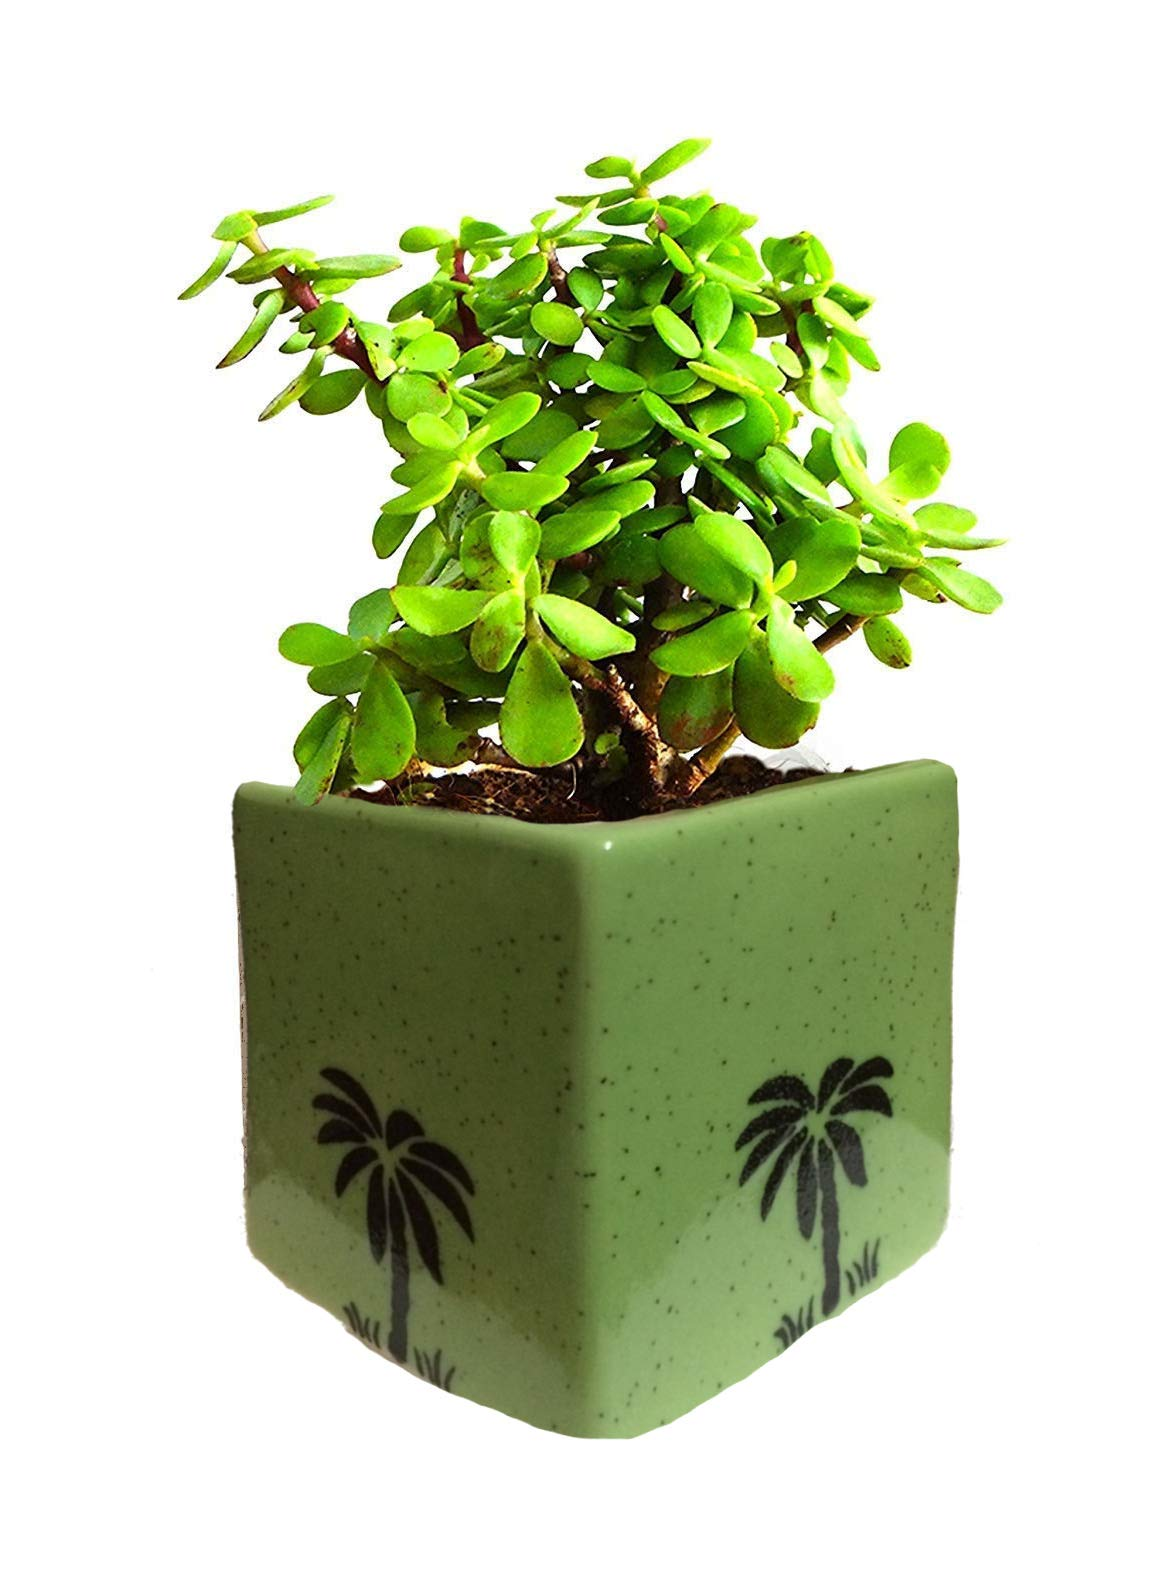 Amazon price history for Abana Homes Beautiful Good Luck Jade Plant with Pot Indoor - Air Purifying